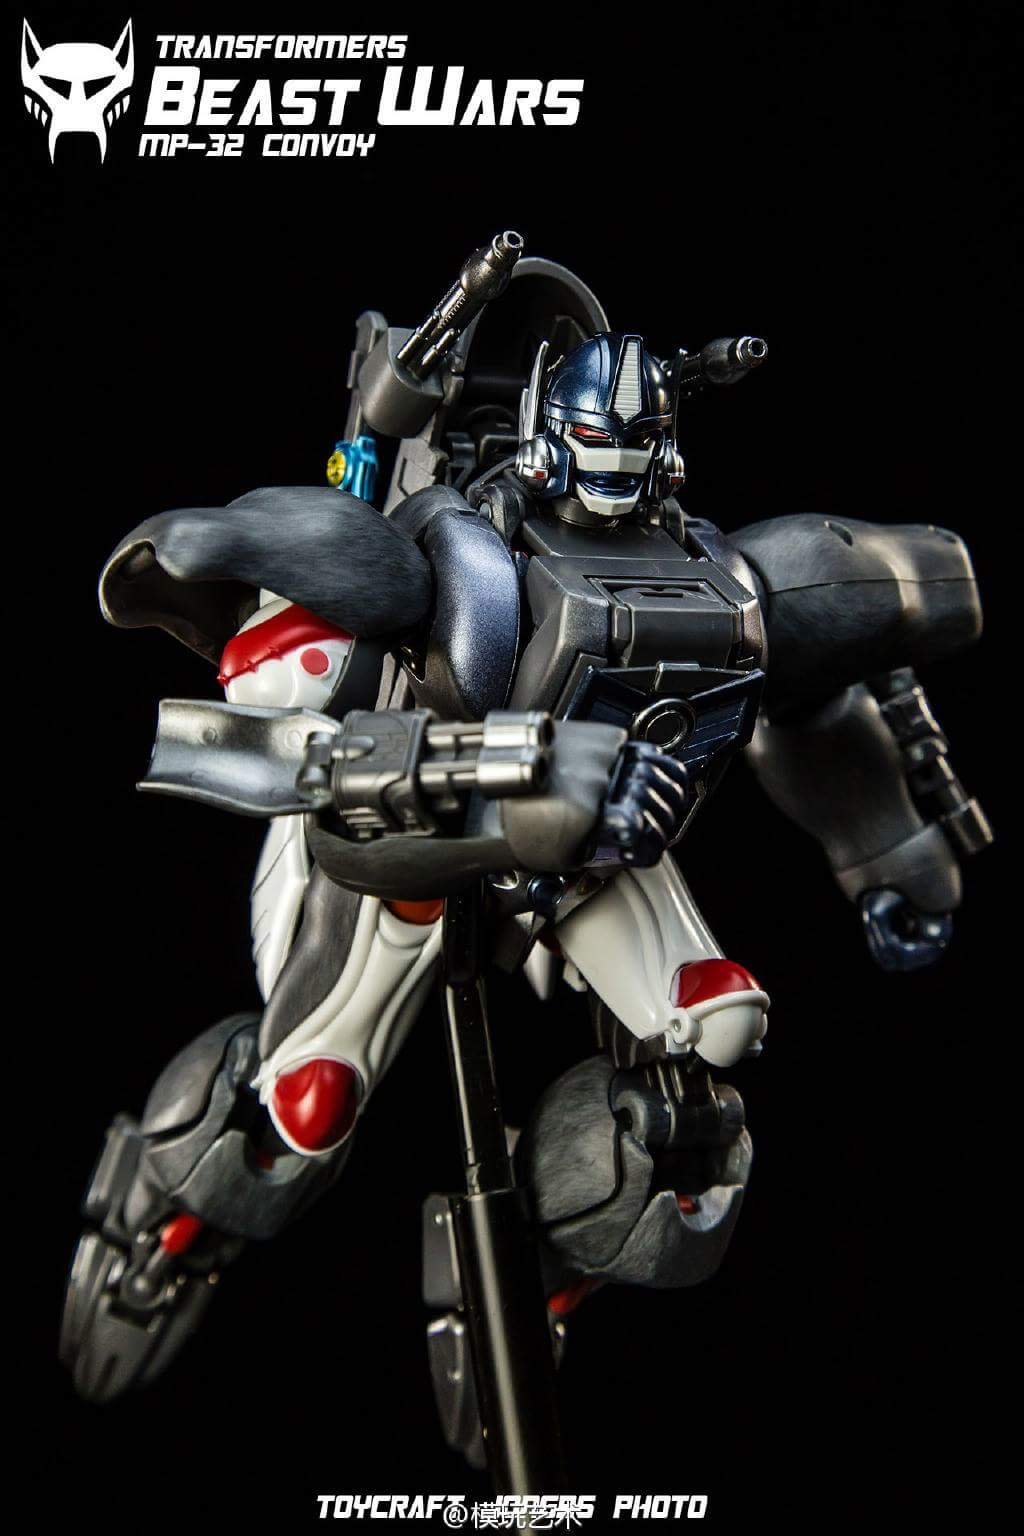 [Masterpiece] MP-32, MP-38 Optimus Primal et MP-38+ Burning Convoy (Beast Wars) - Page 3 ItfpMAOC